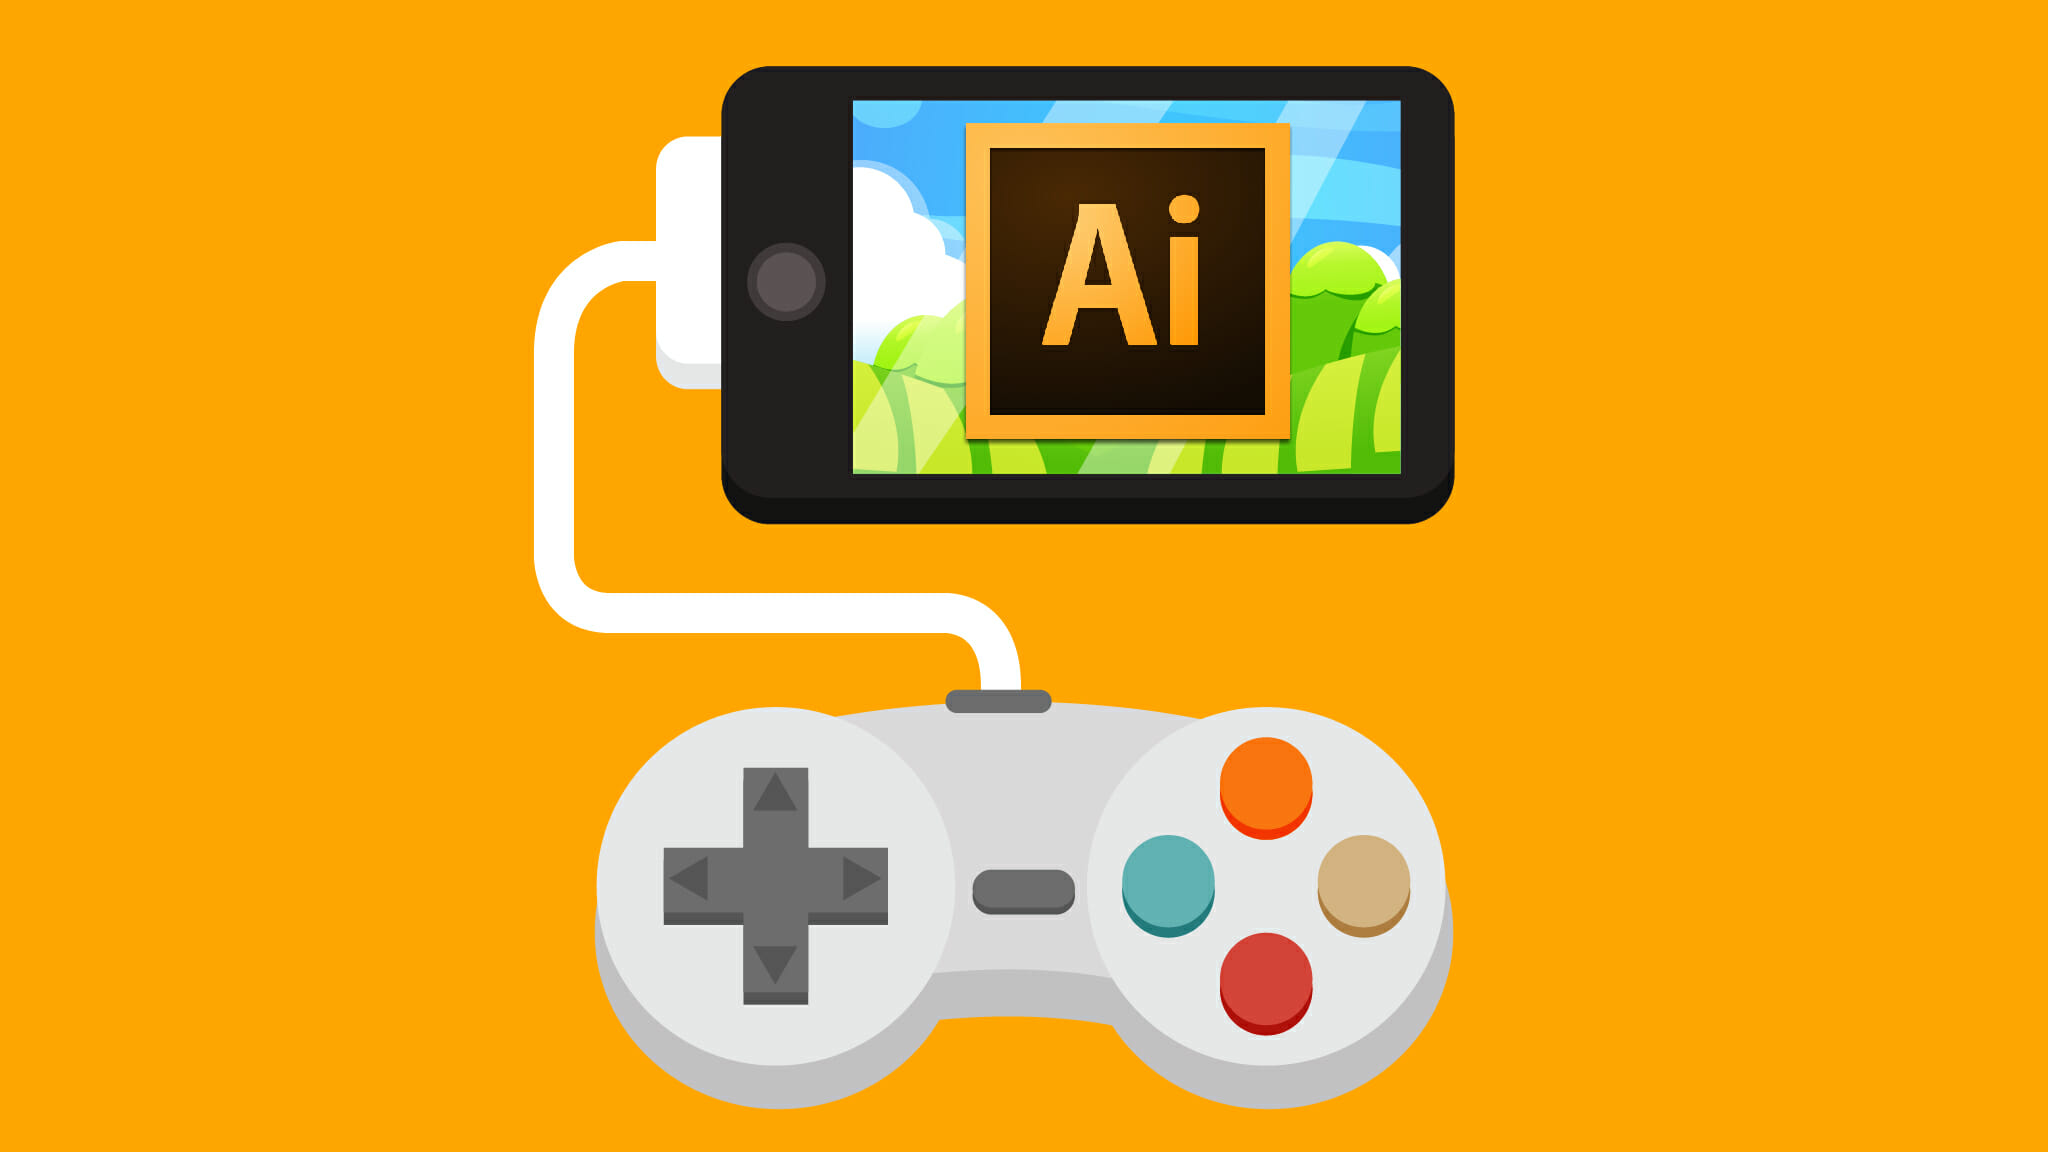 Make Mobile Game Art with Adobe Illustrator